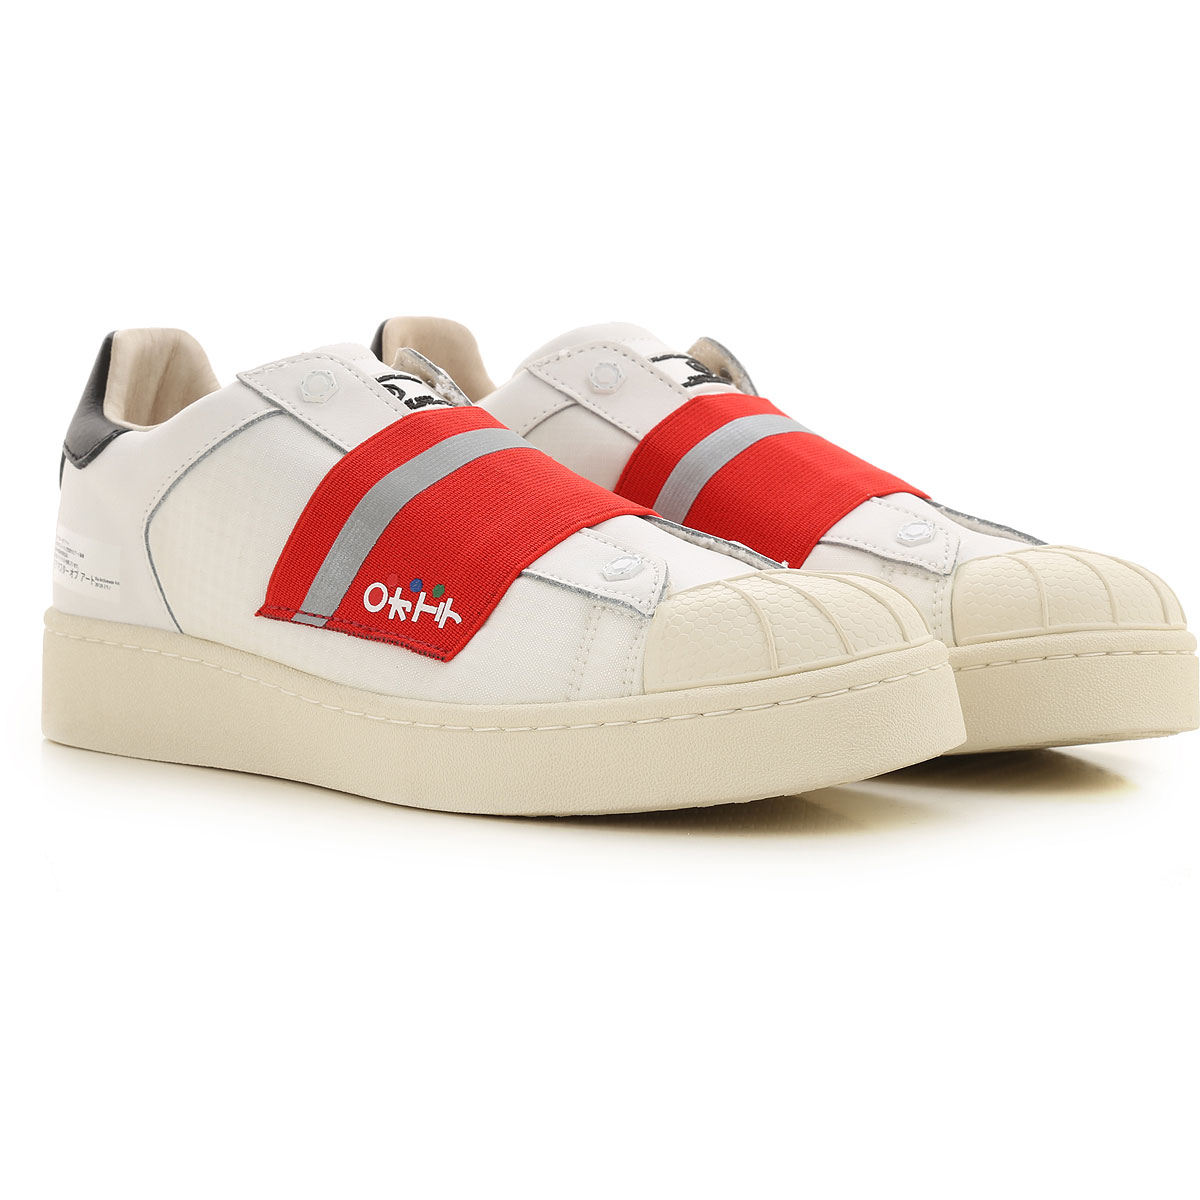 Moa Master of Arts Sneakers for Men On Sale in Outlet, White, Leather, 2019, 7.5 9